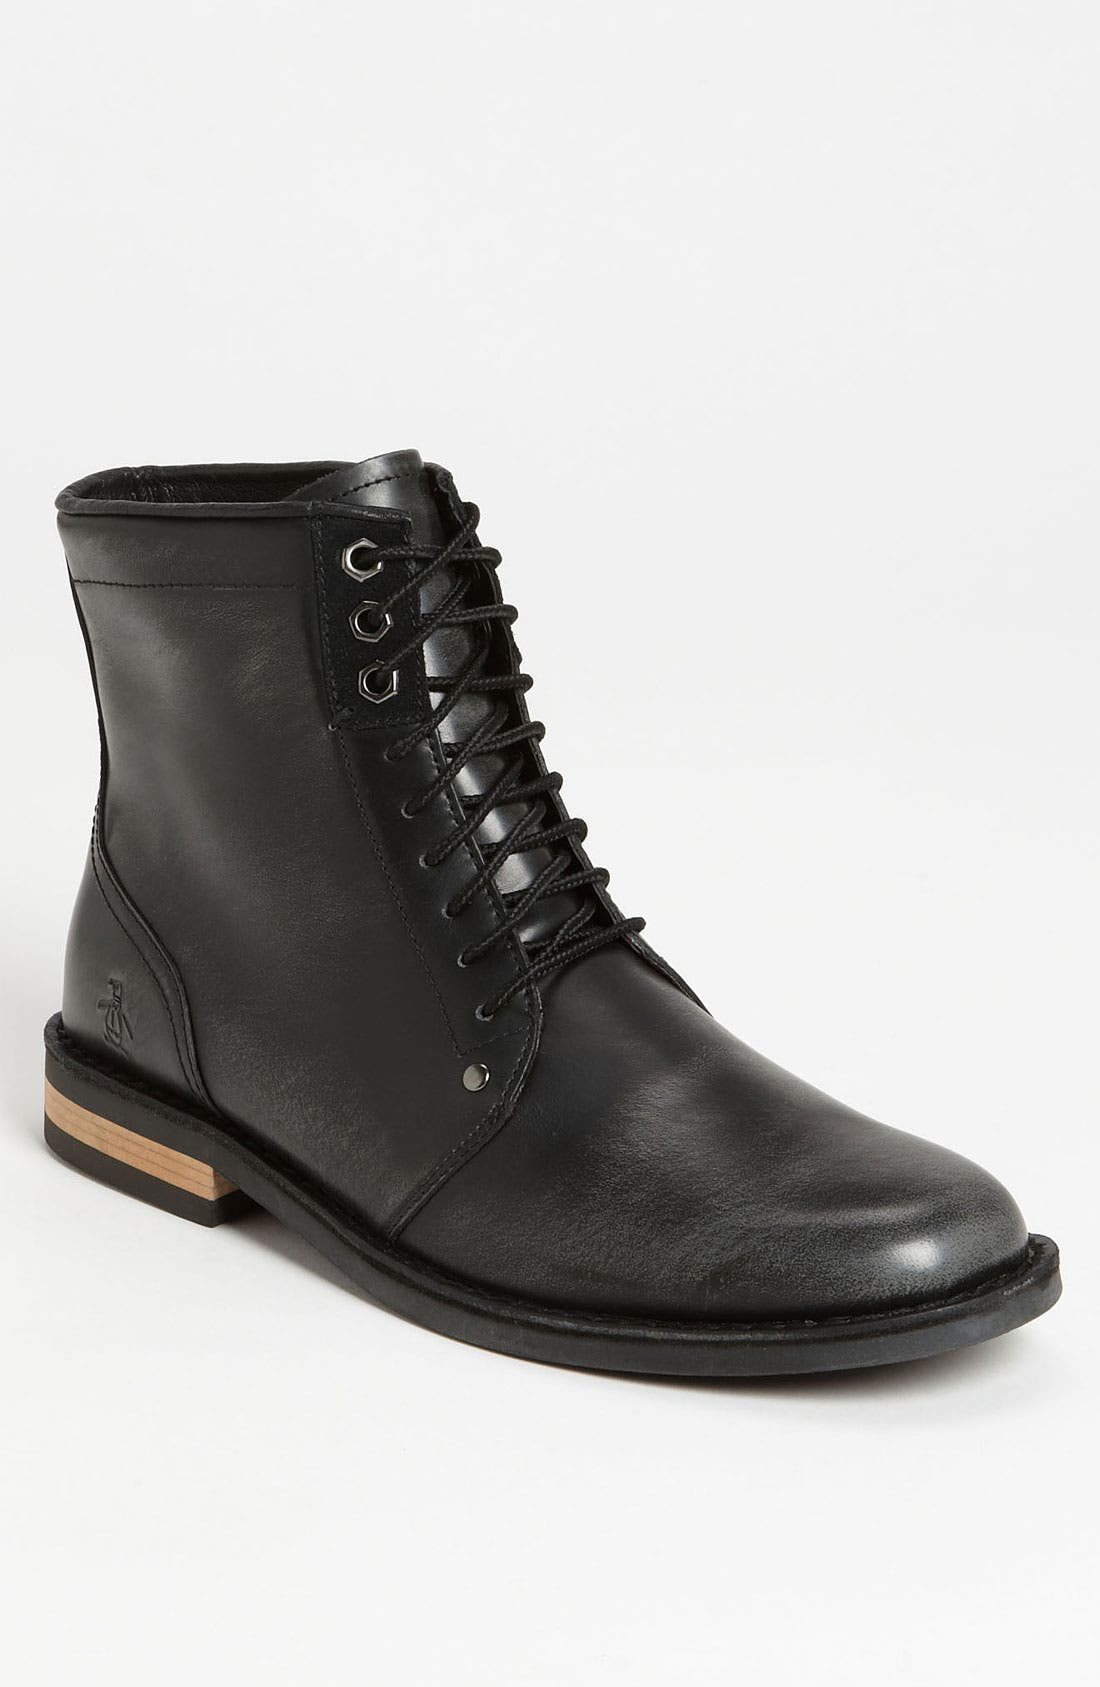 Alternate Image 1 Selected - Original Penguin 'Jerry Jeff' Boot (Online Exclusive)